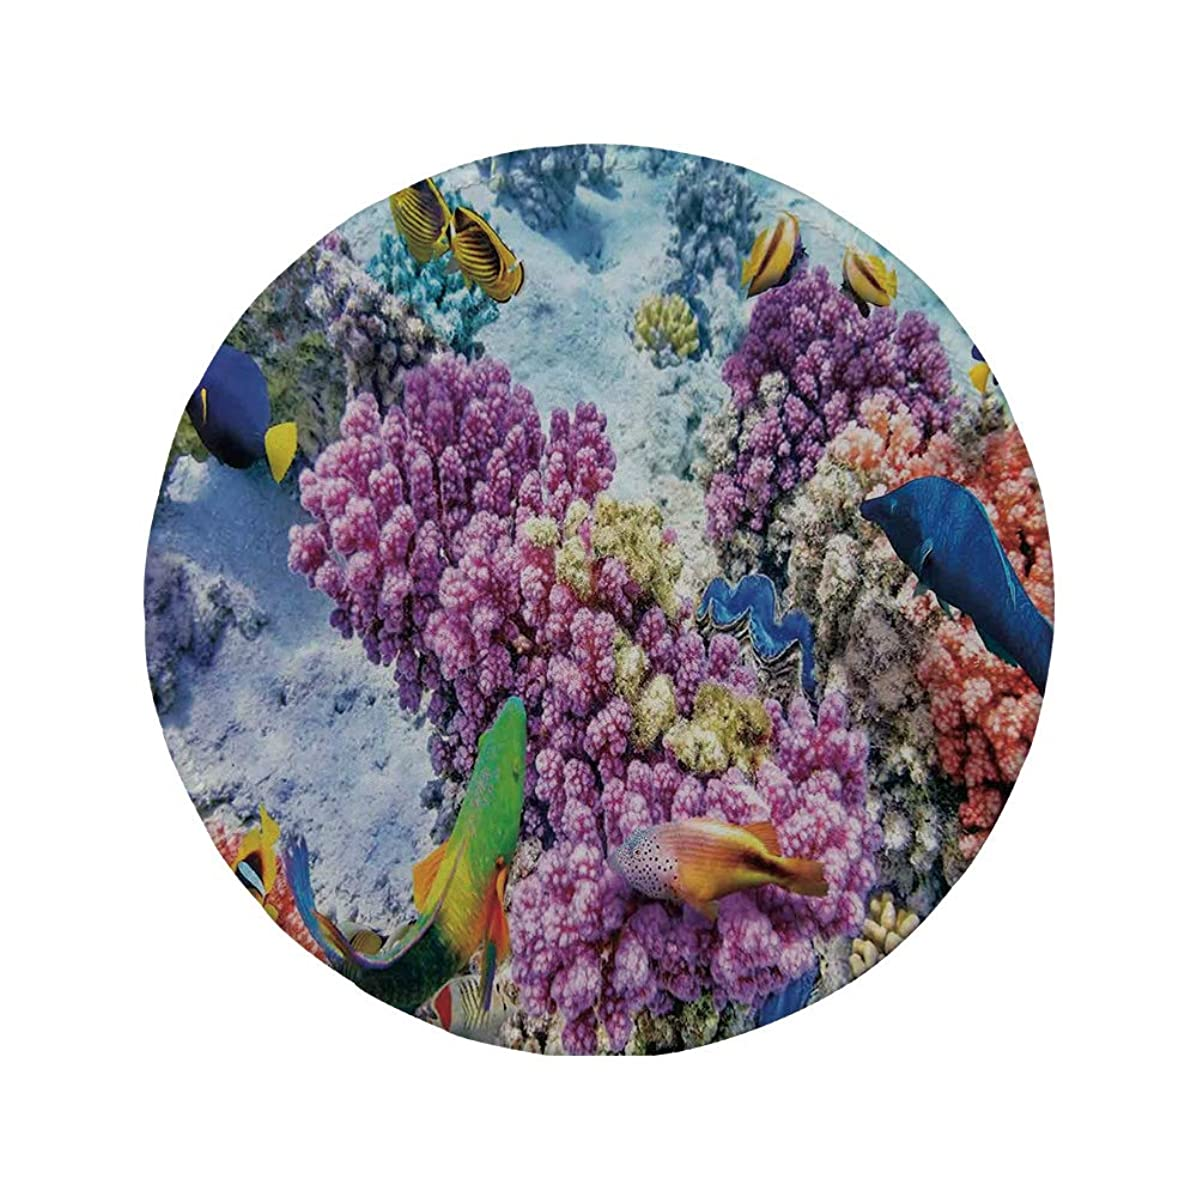 Non-Slip Rubber Round Mouse Pad,Ocean Decor,Surreal View of Marine Life with Submerged Colony of Pillar Corals Aquatic Fauna,Multi,7.87